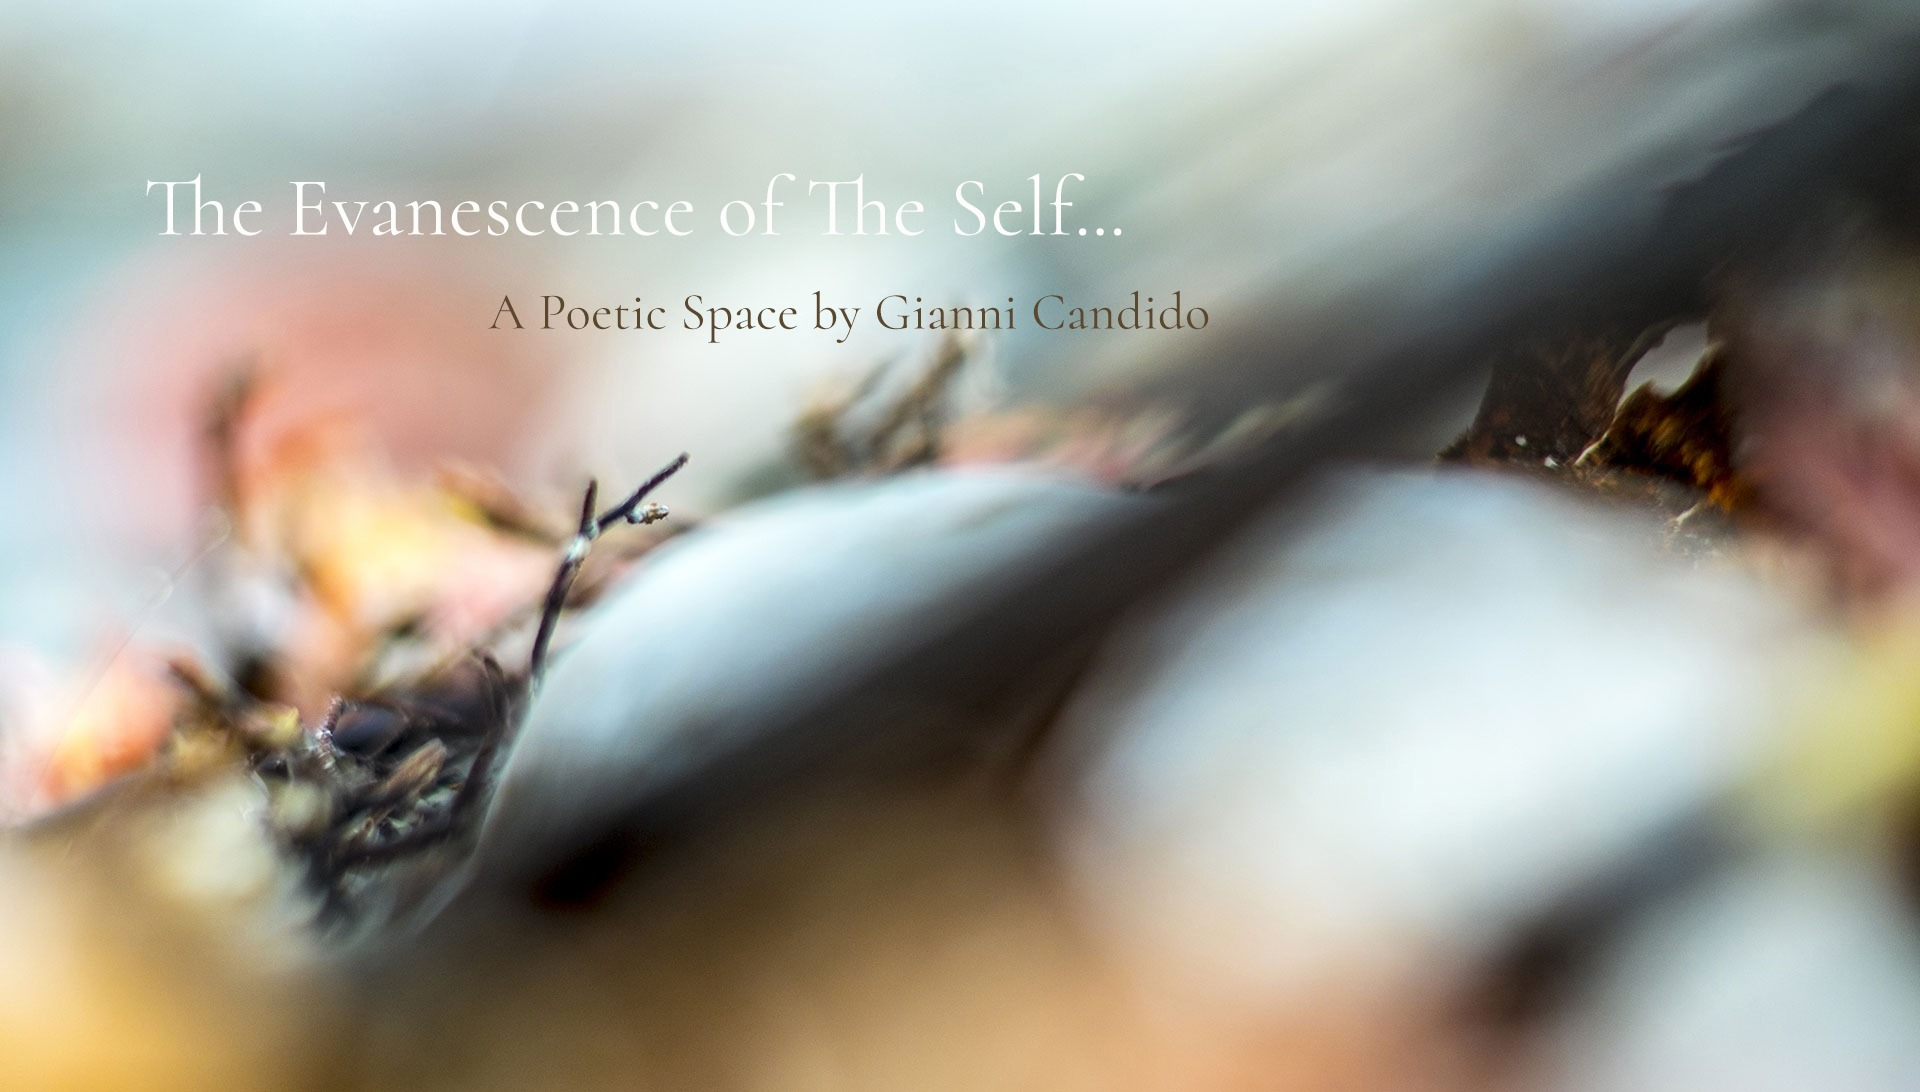 The Evanescence of The Self- A Poetic Space by Gianni Candido